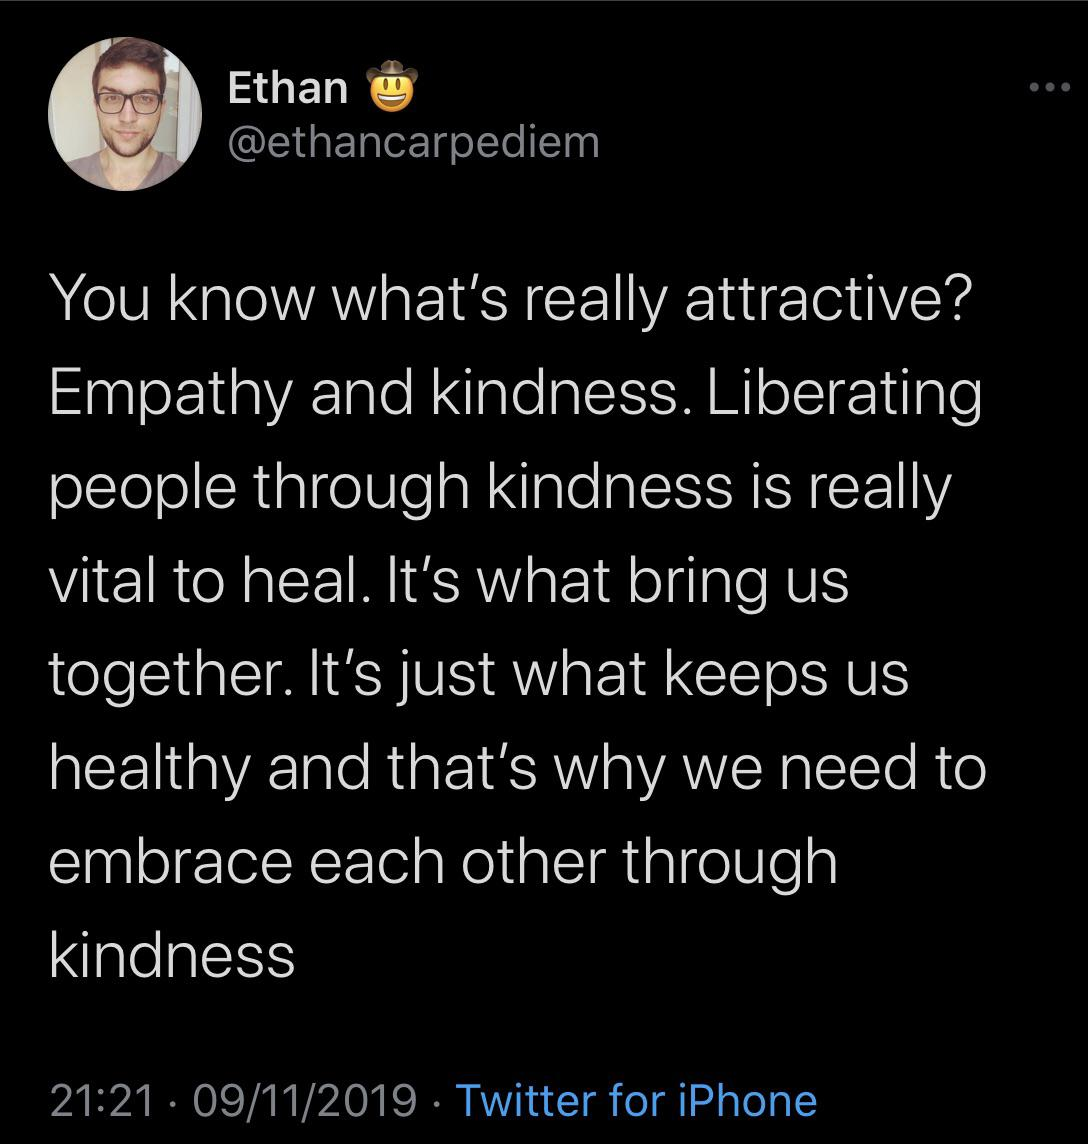 [Image] Kindness is more attractive